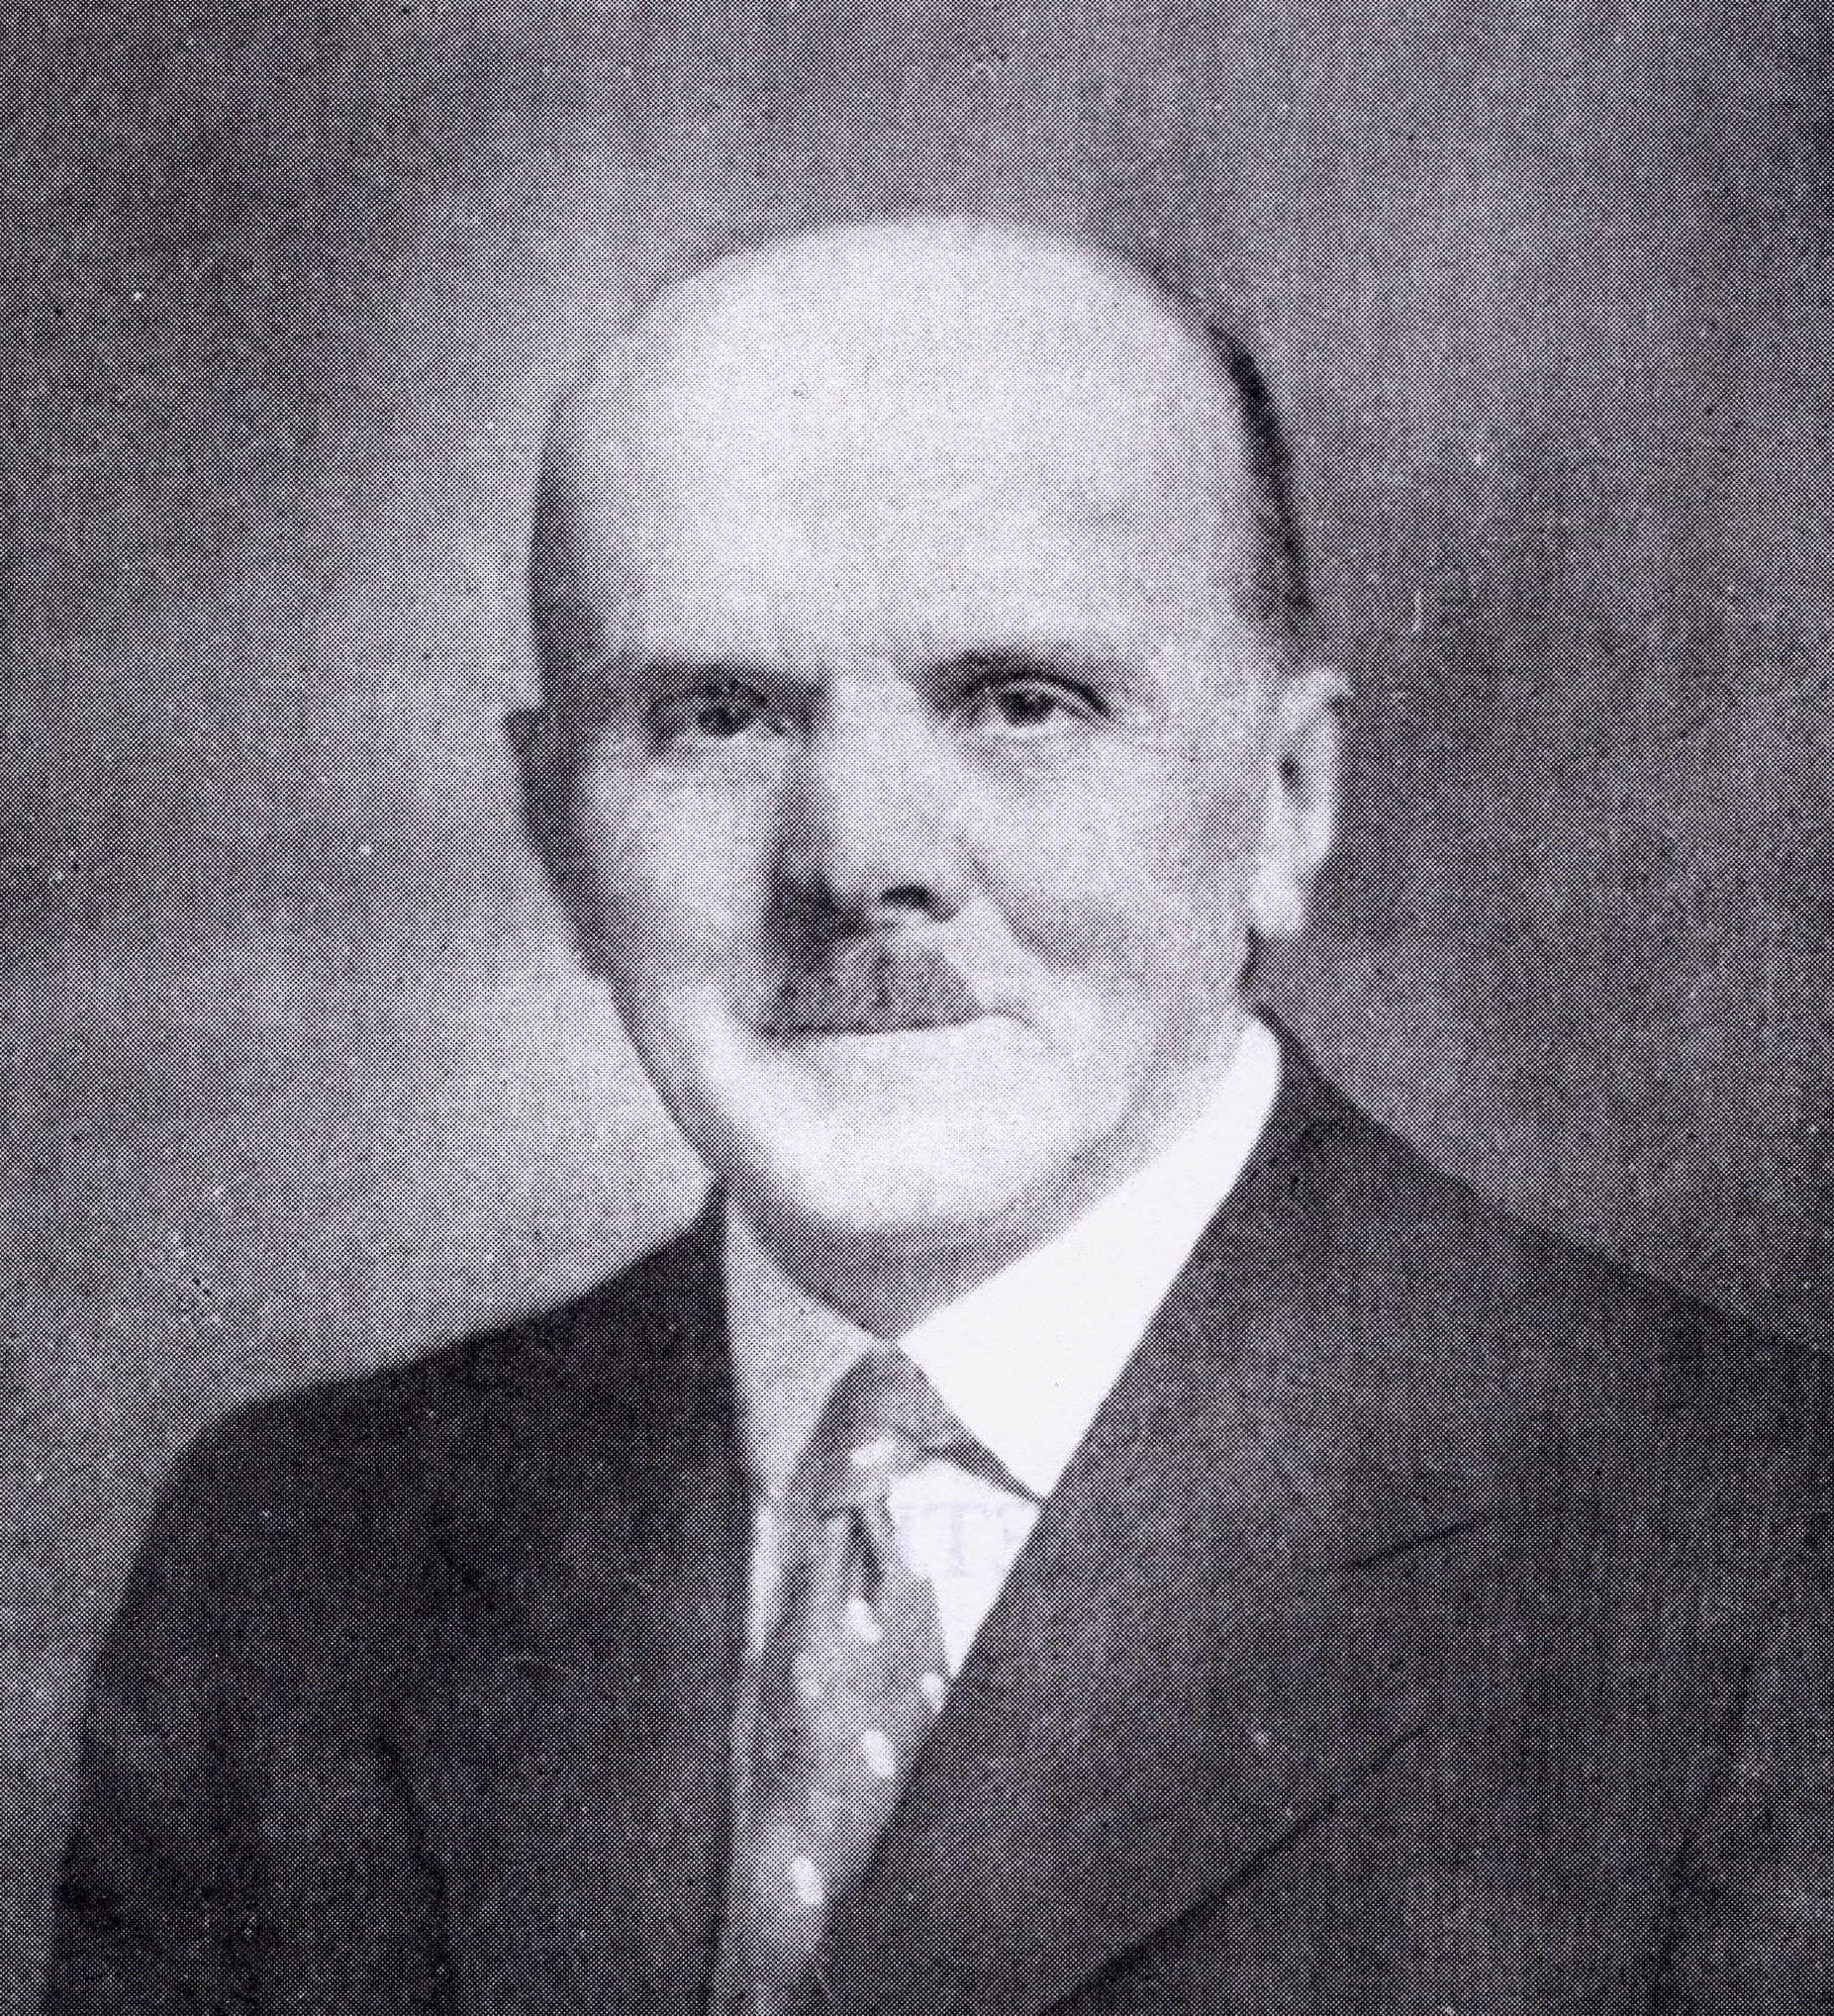 The Wright Watson Enterprise Centre is named after Mr Wright Watson who is buried in the grounds